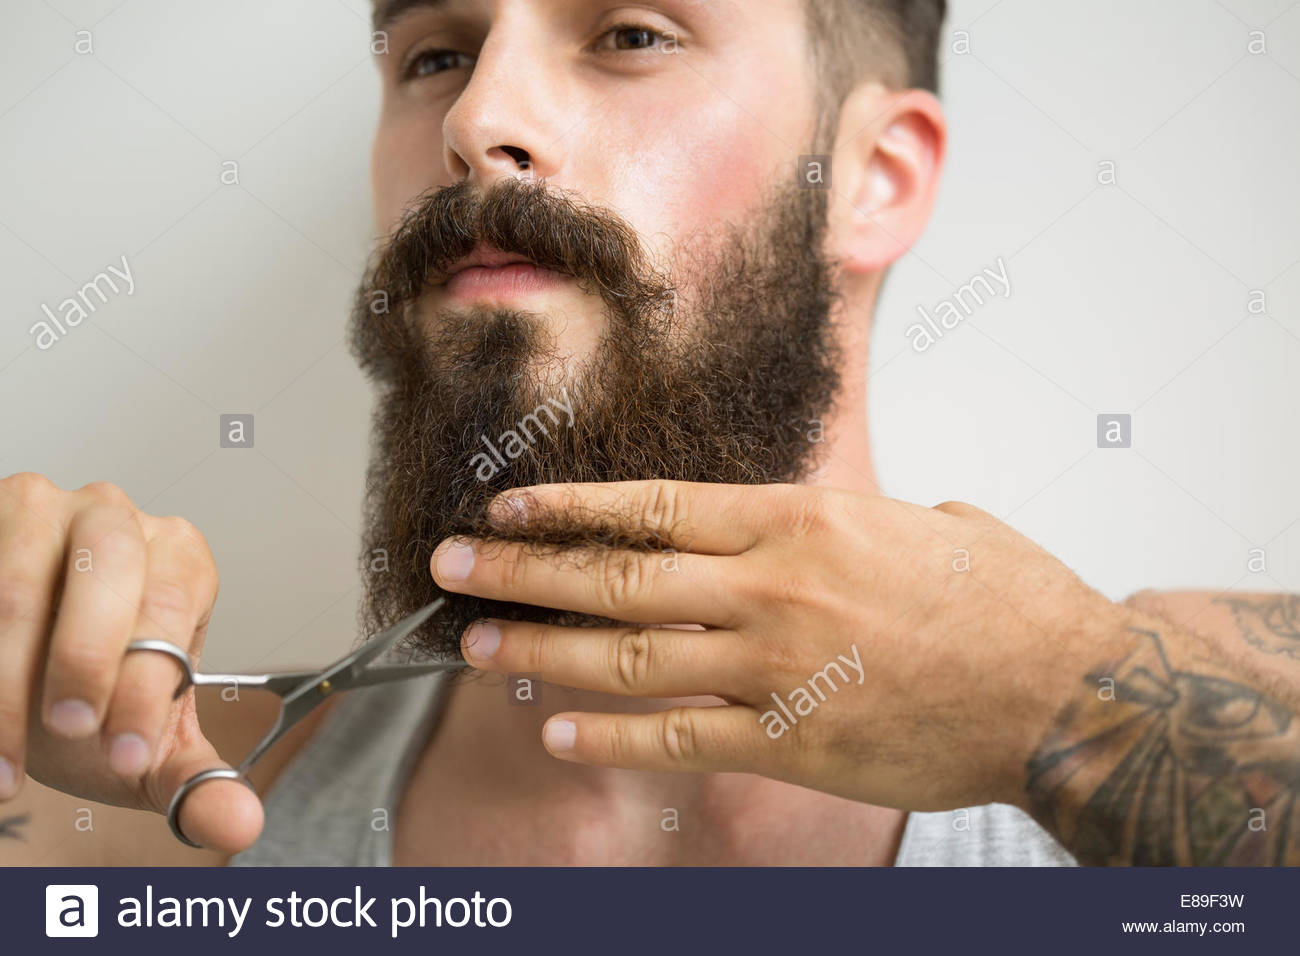 Close up of man trimming beard with scissors - Stock Image